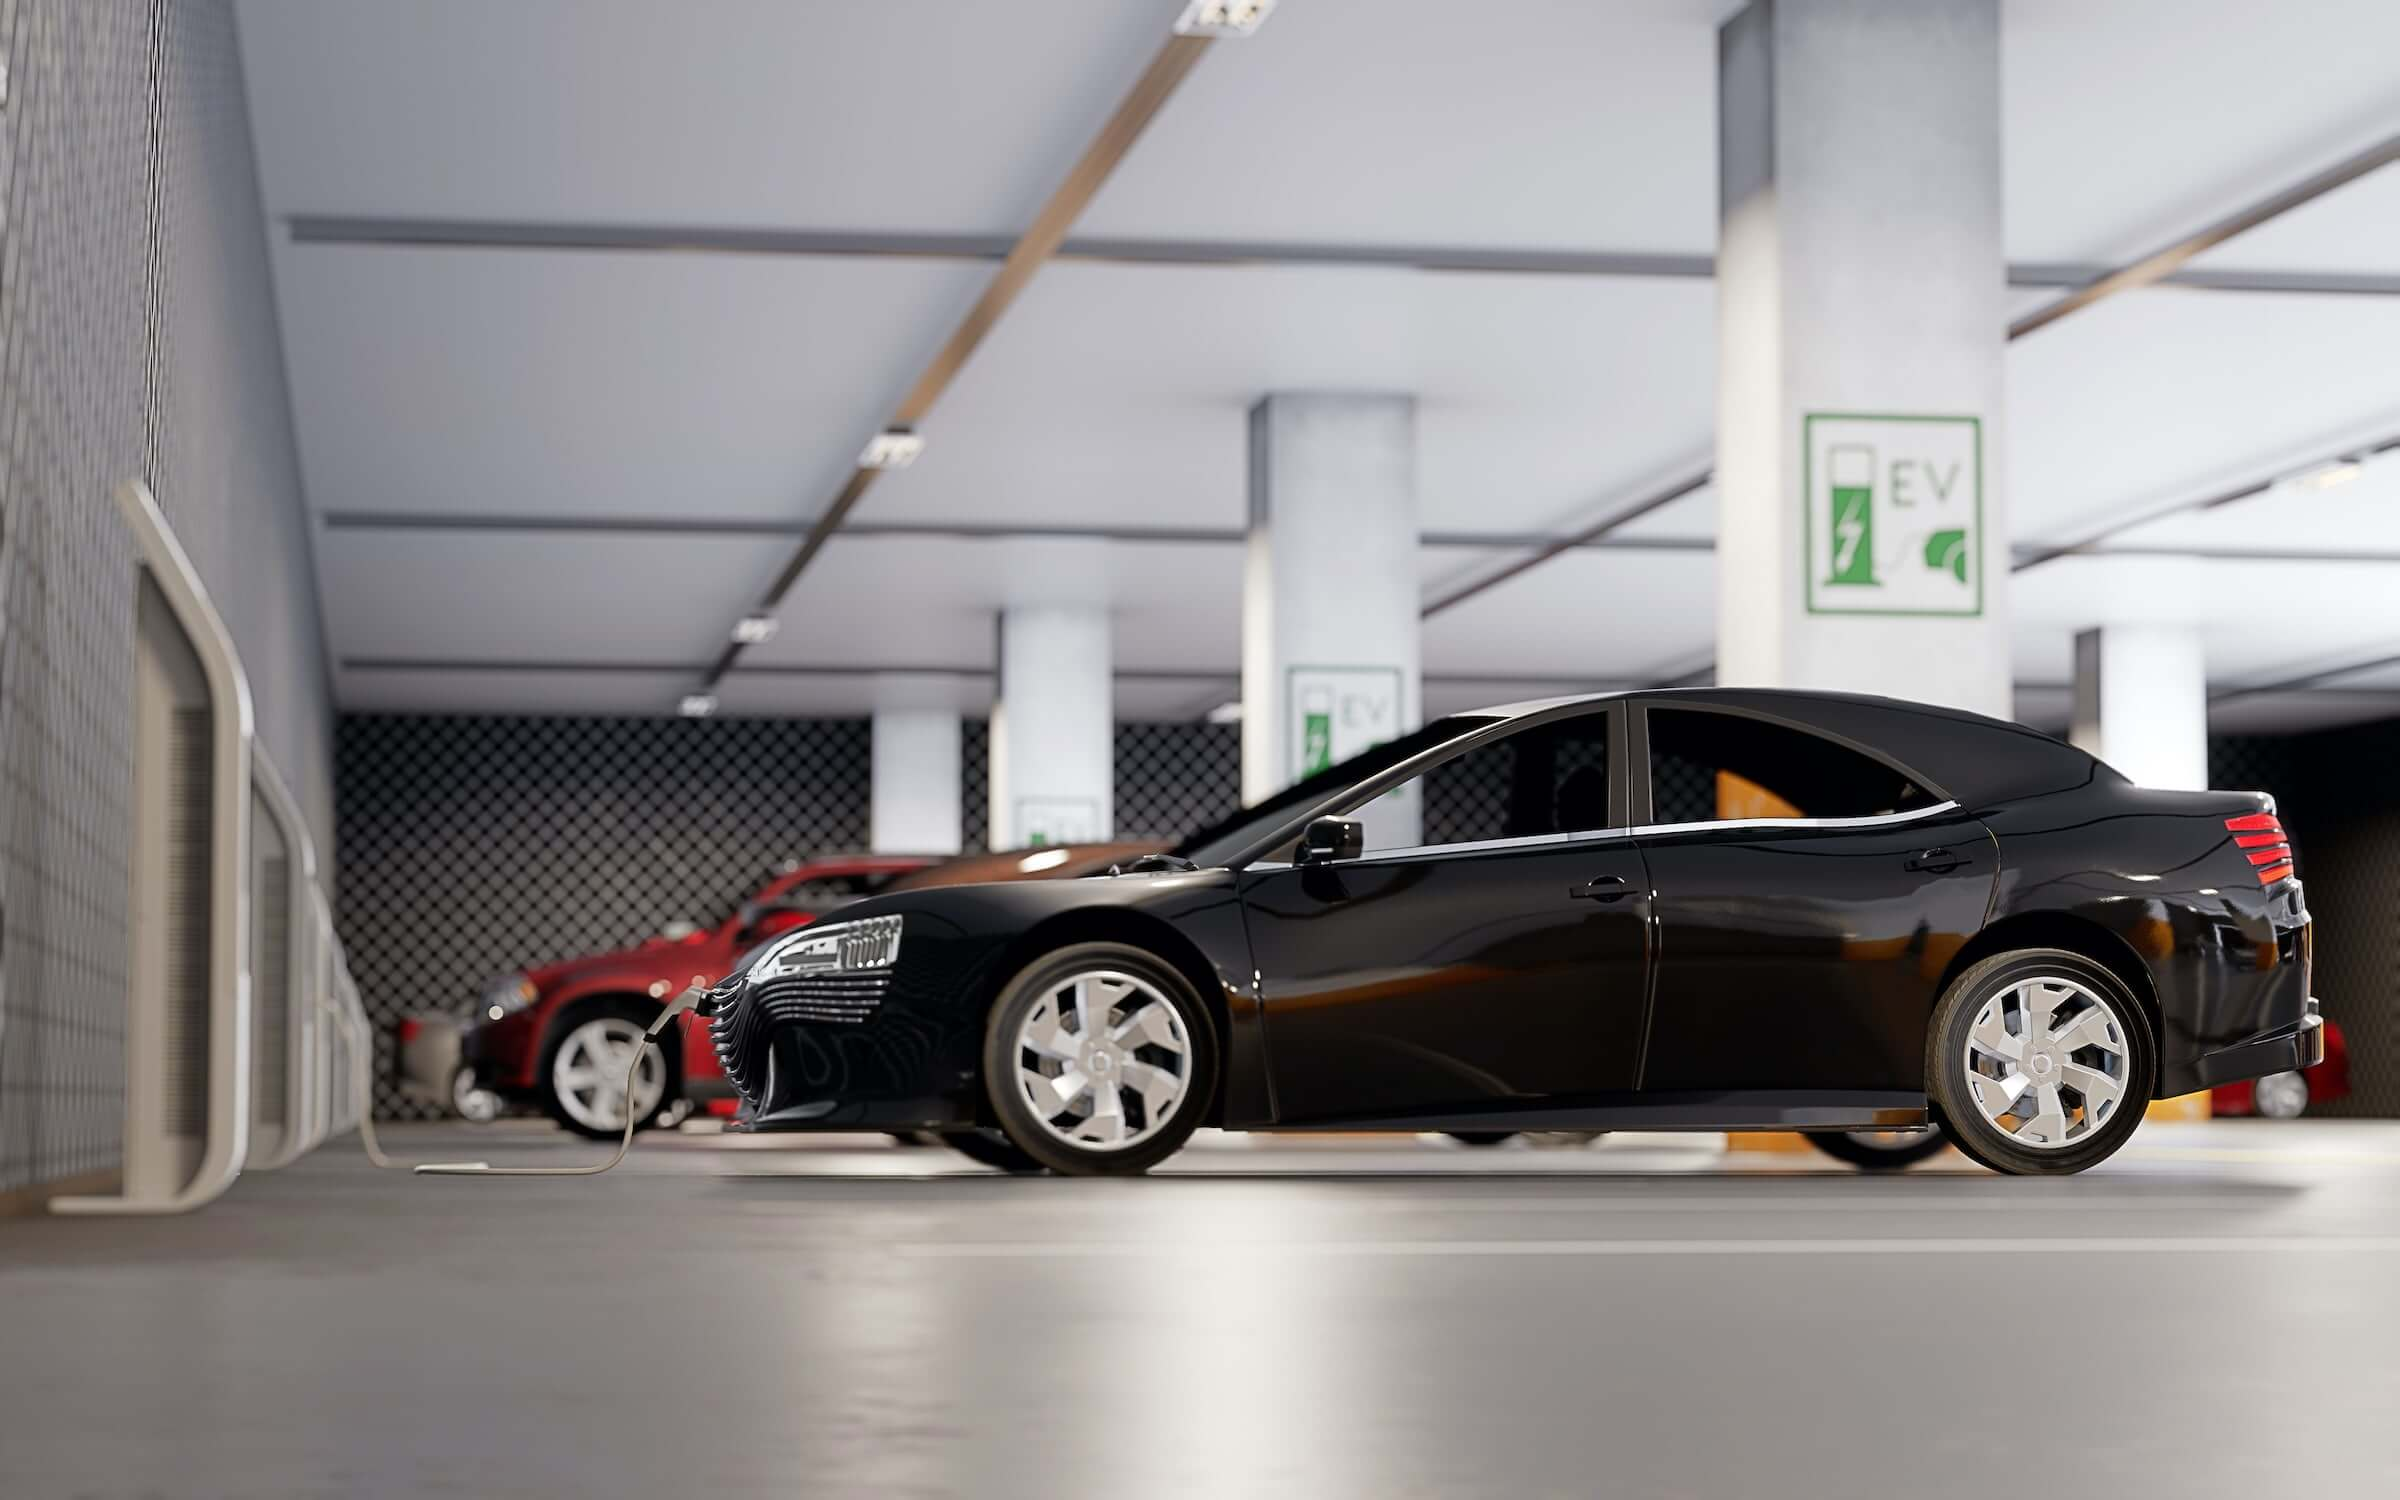 A black car in a parking garage being charged by an electric charger